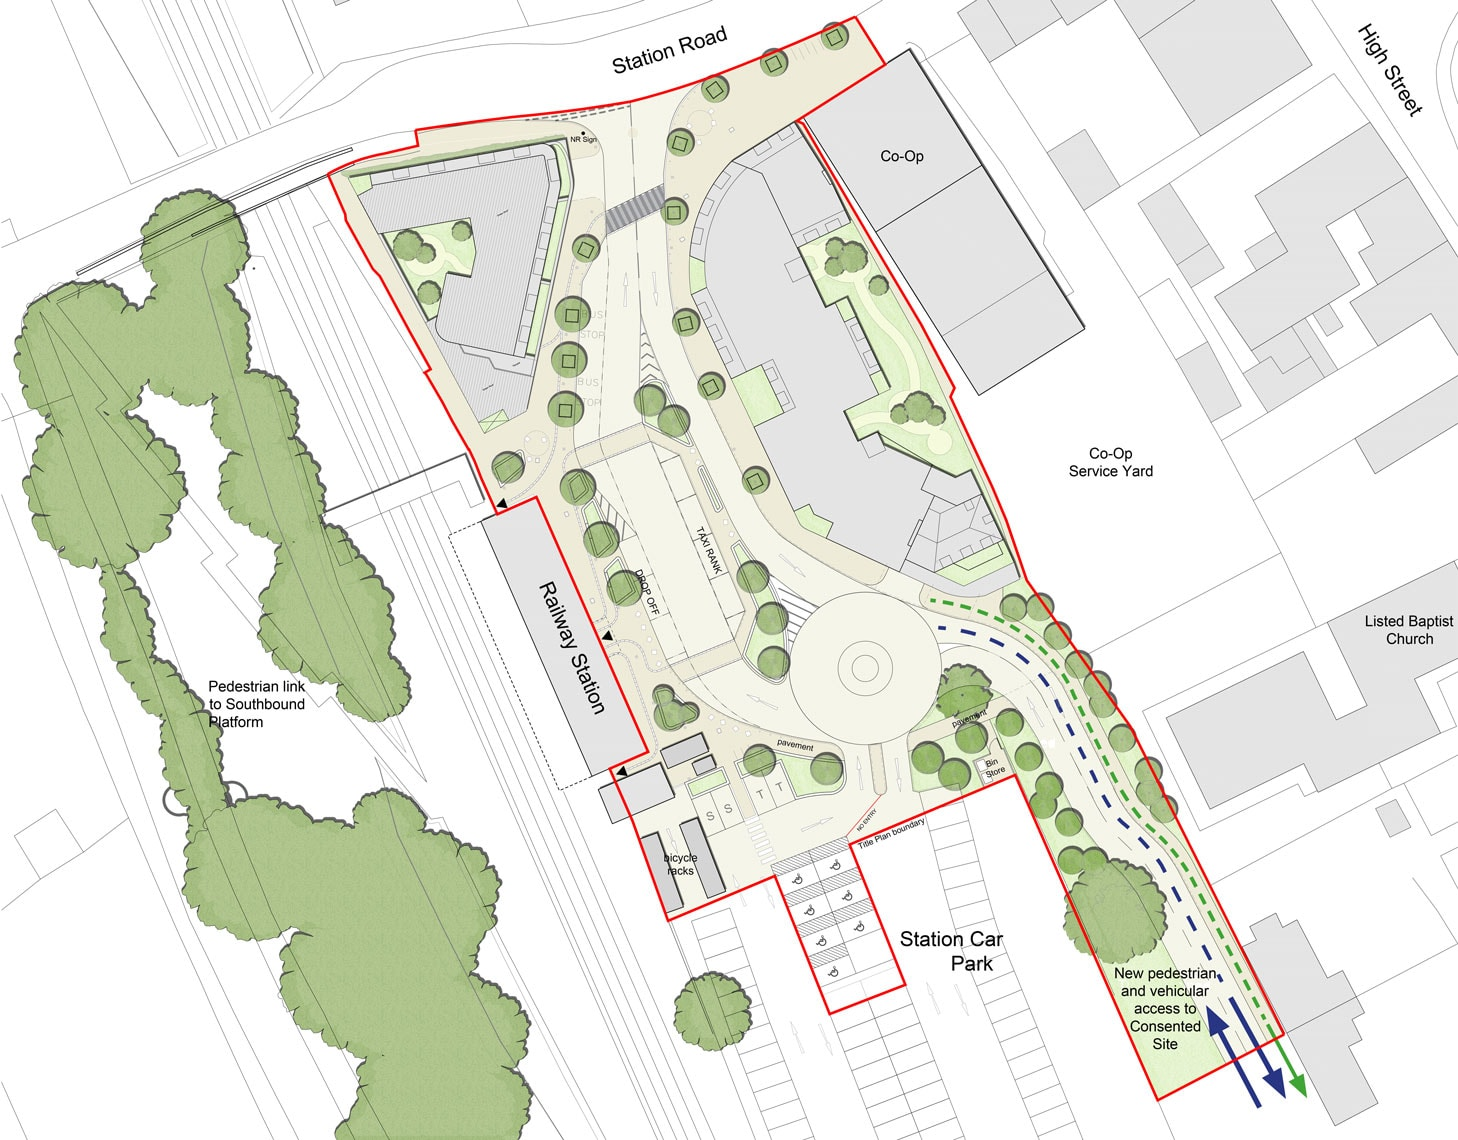 23154A_Plan-Highlighting-New-Access-to-Consented-Site-